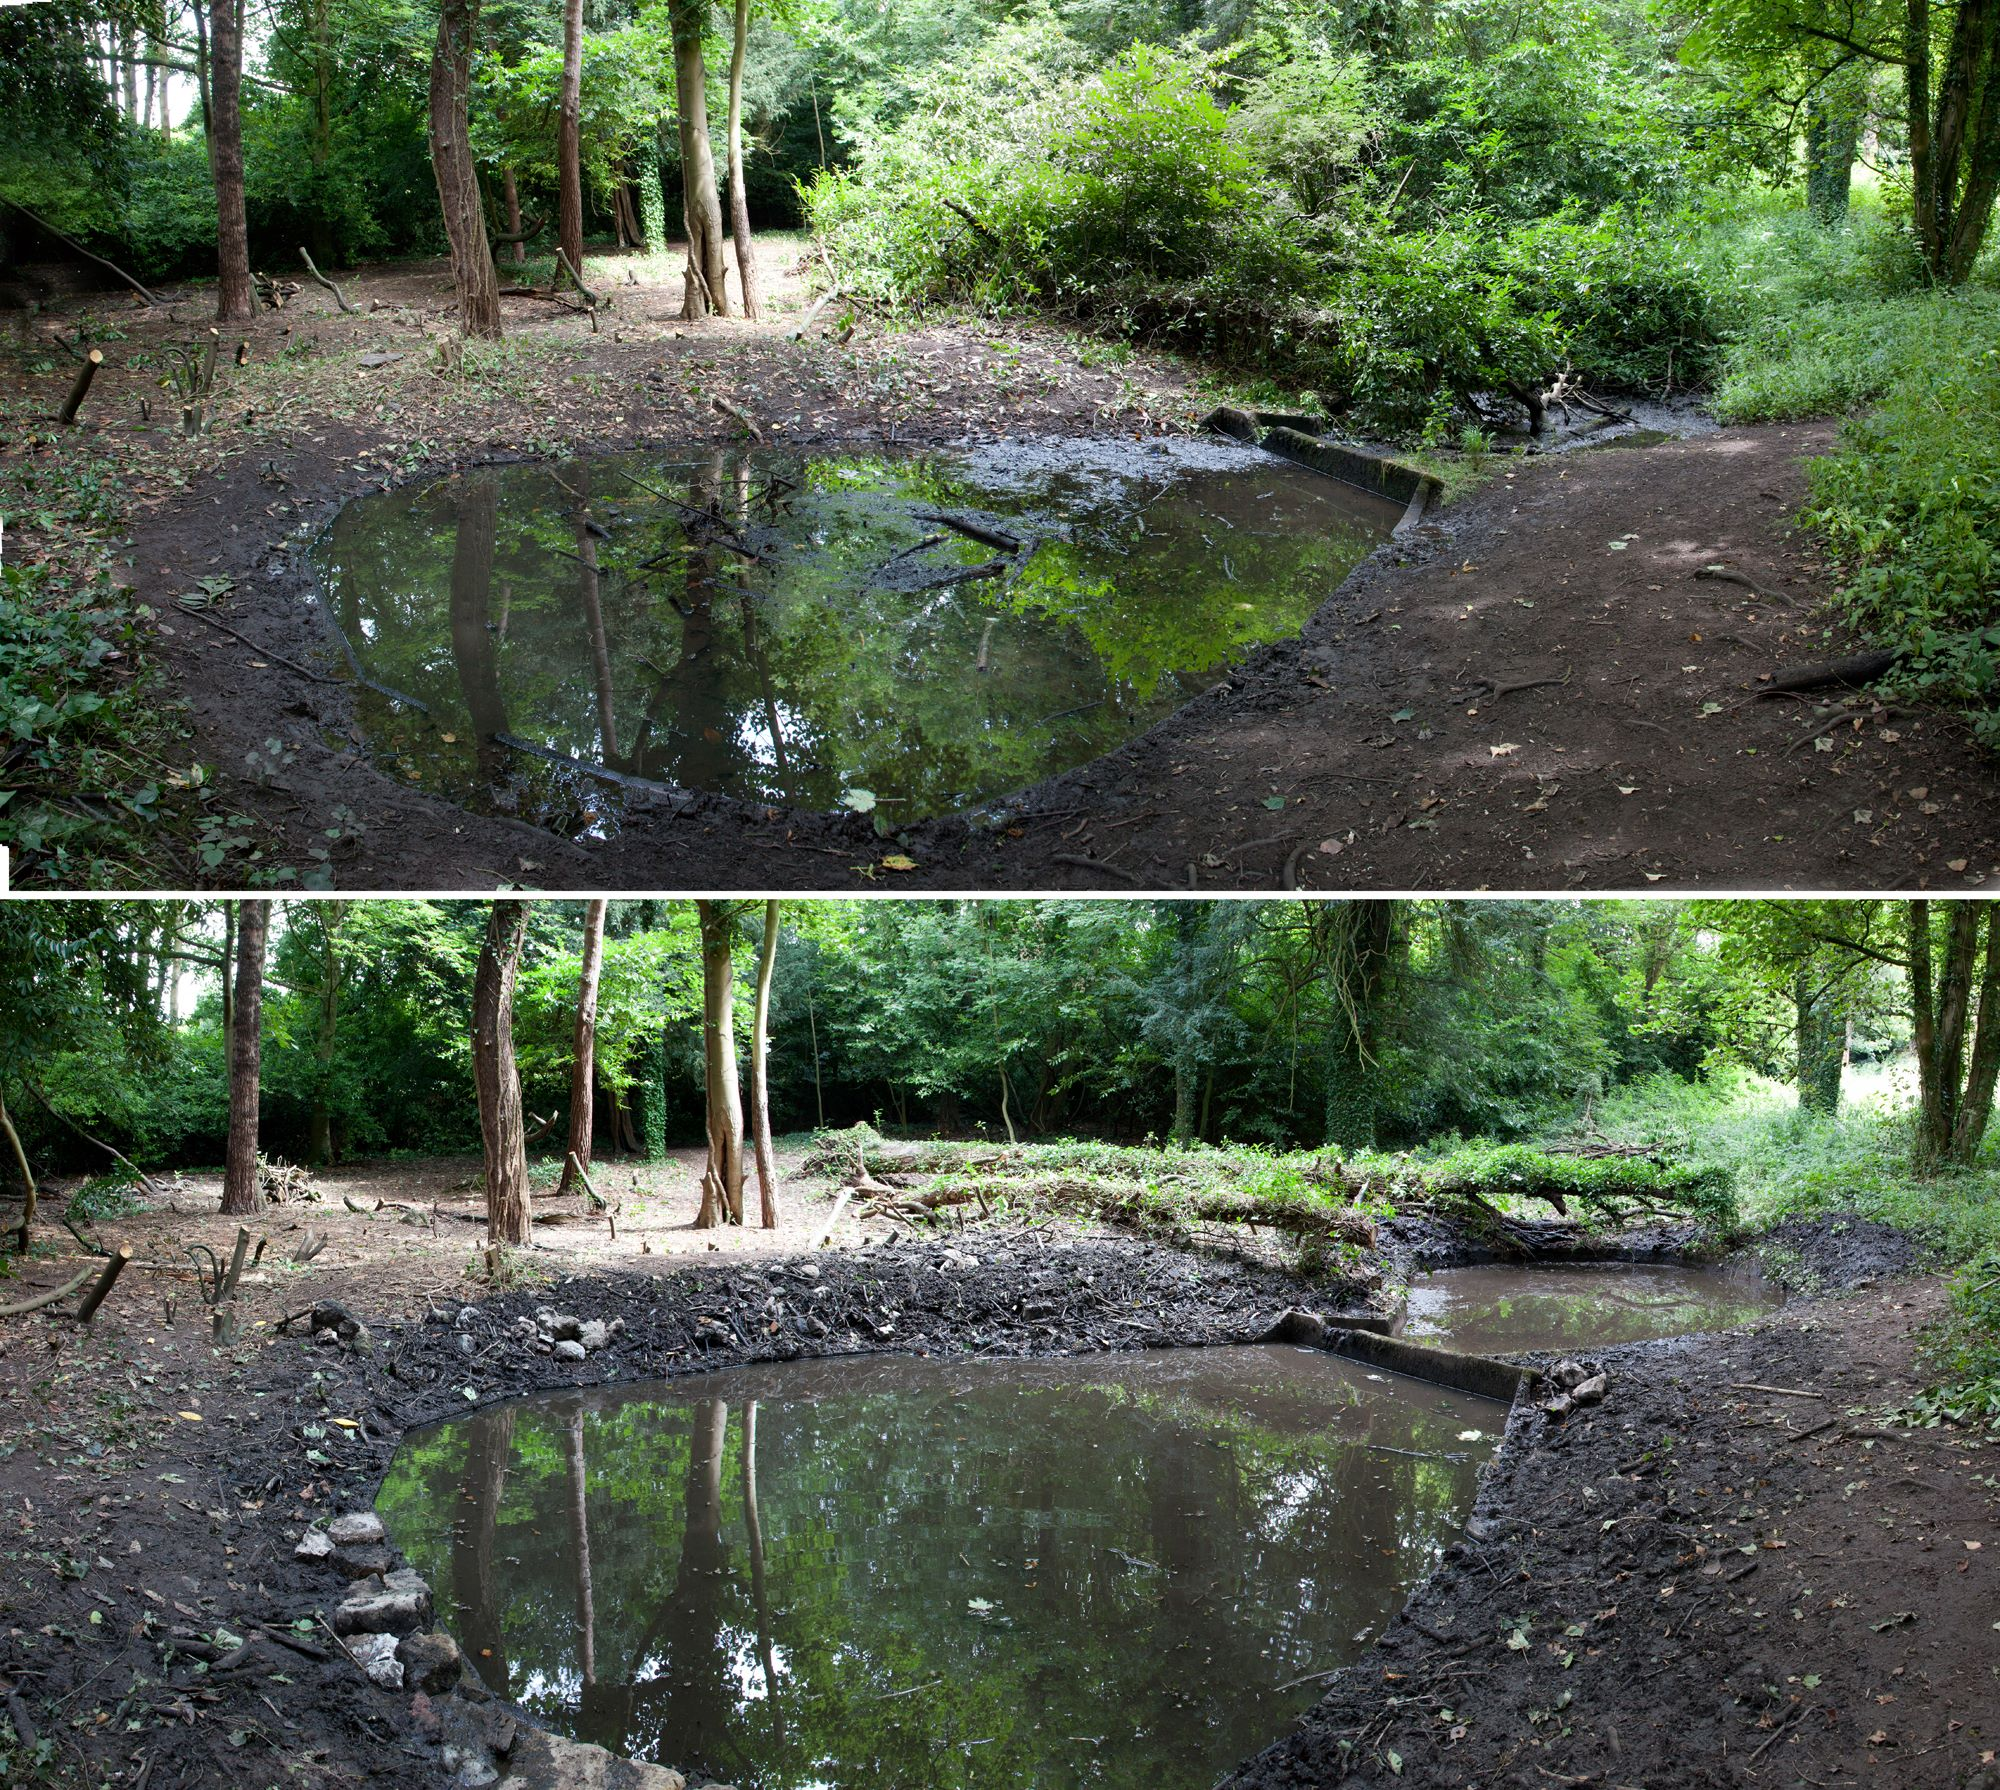 The lower pond was cleared of debris, and the upper pond appears out of the undergrowth.